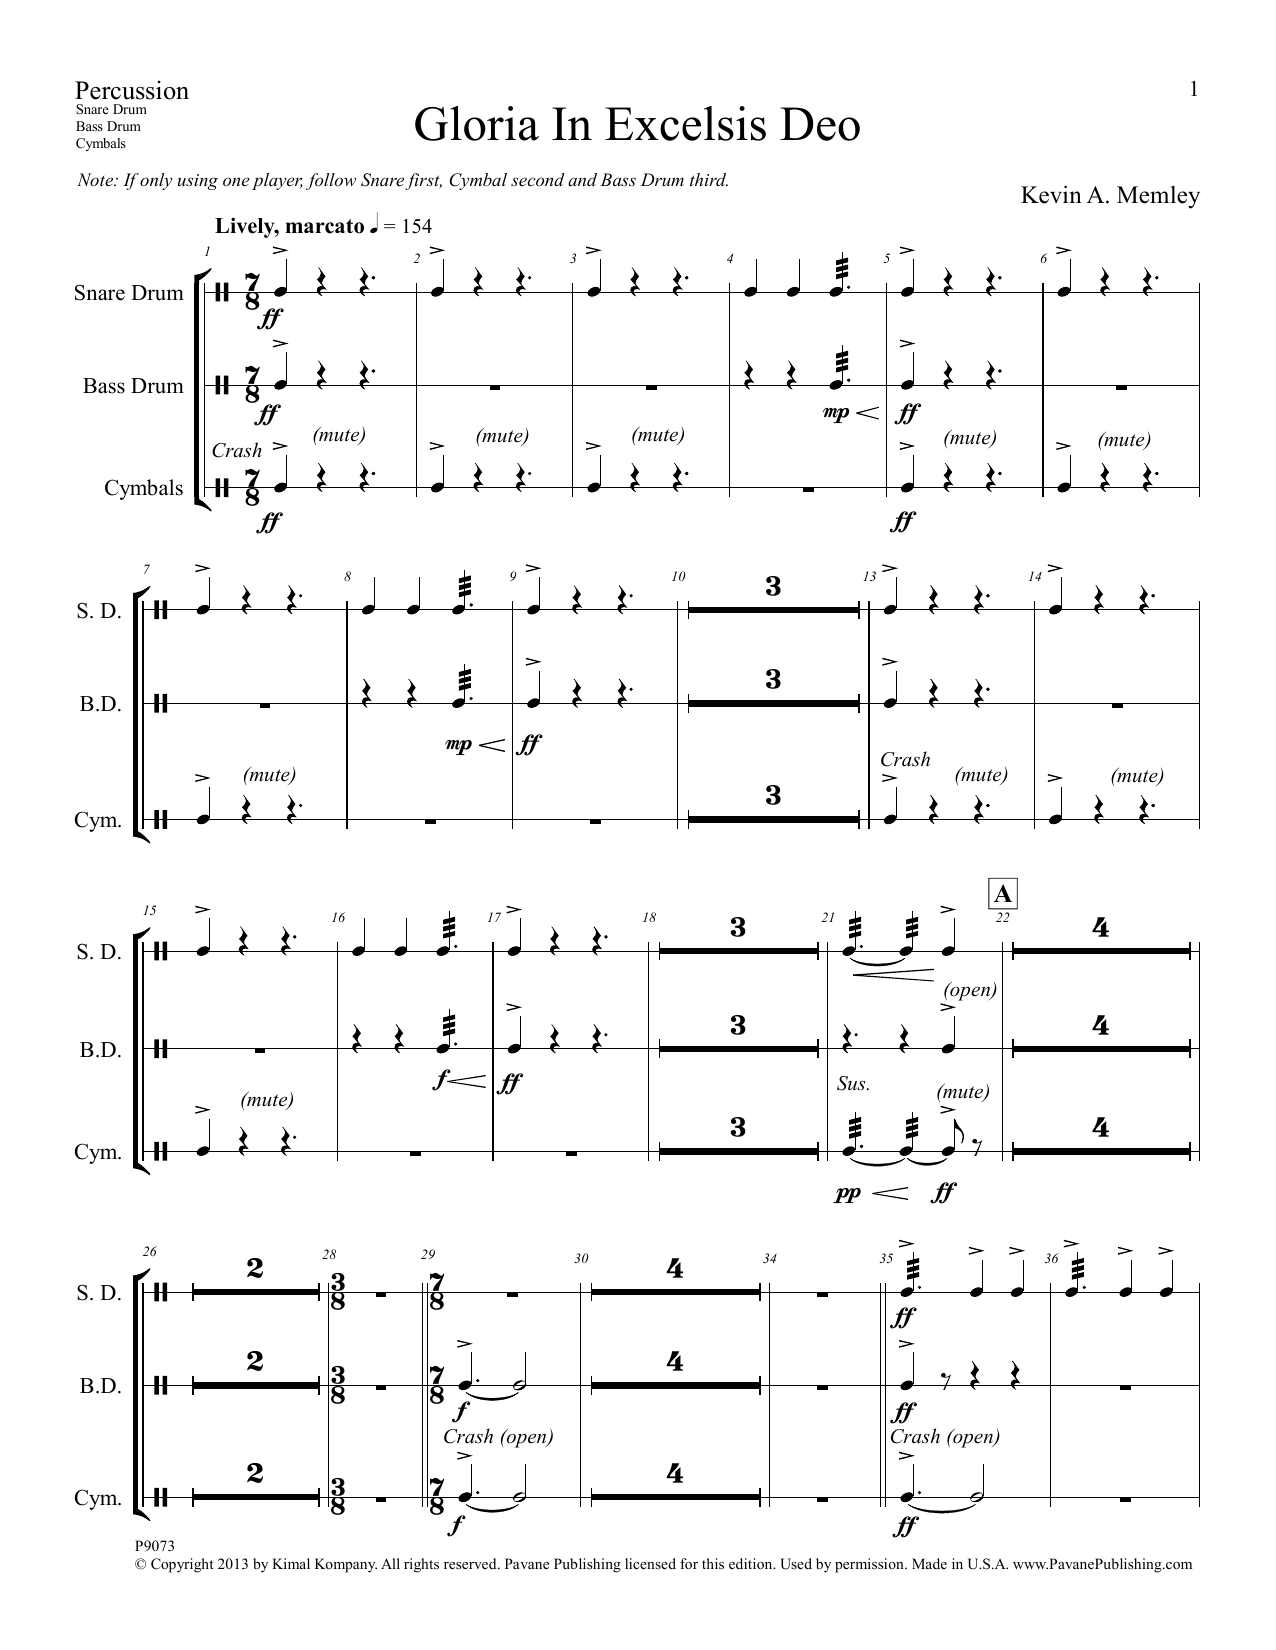 Gloria in Excelsis Deo - Percussion Sheet Music